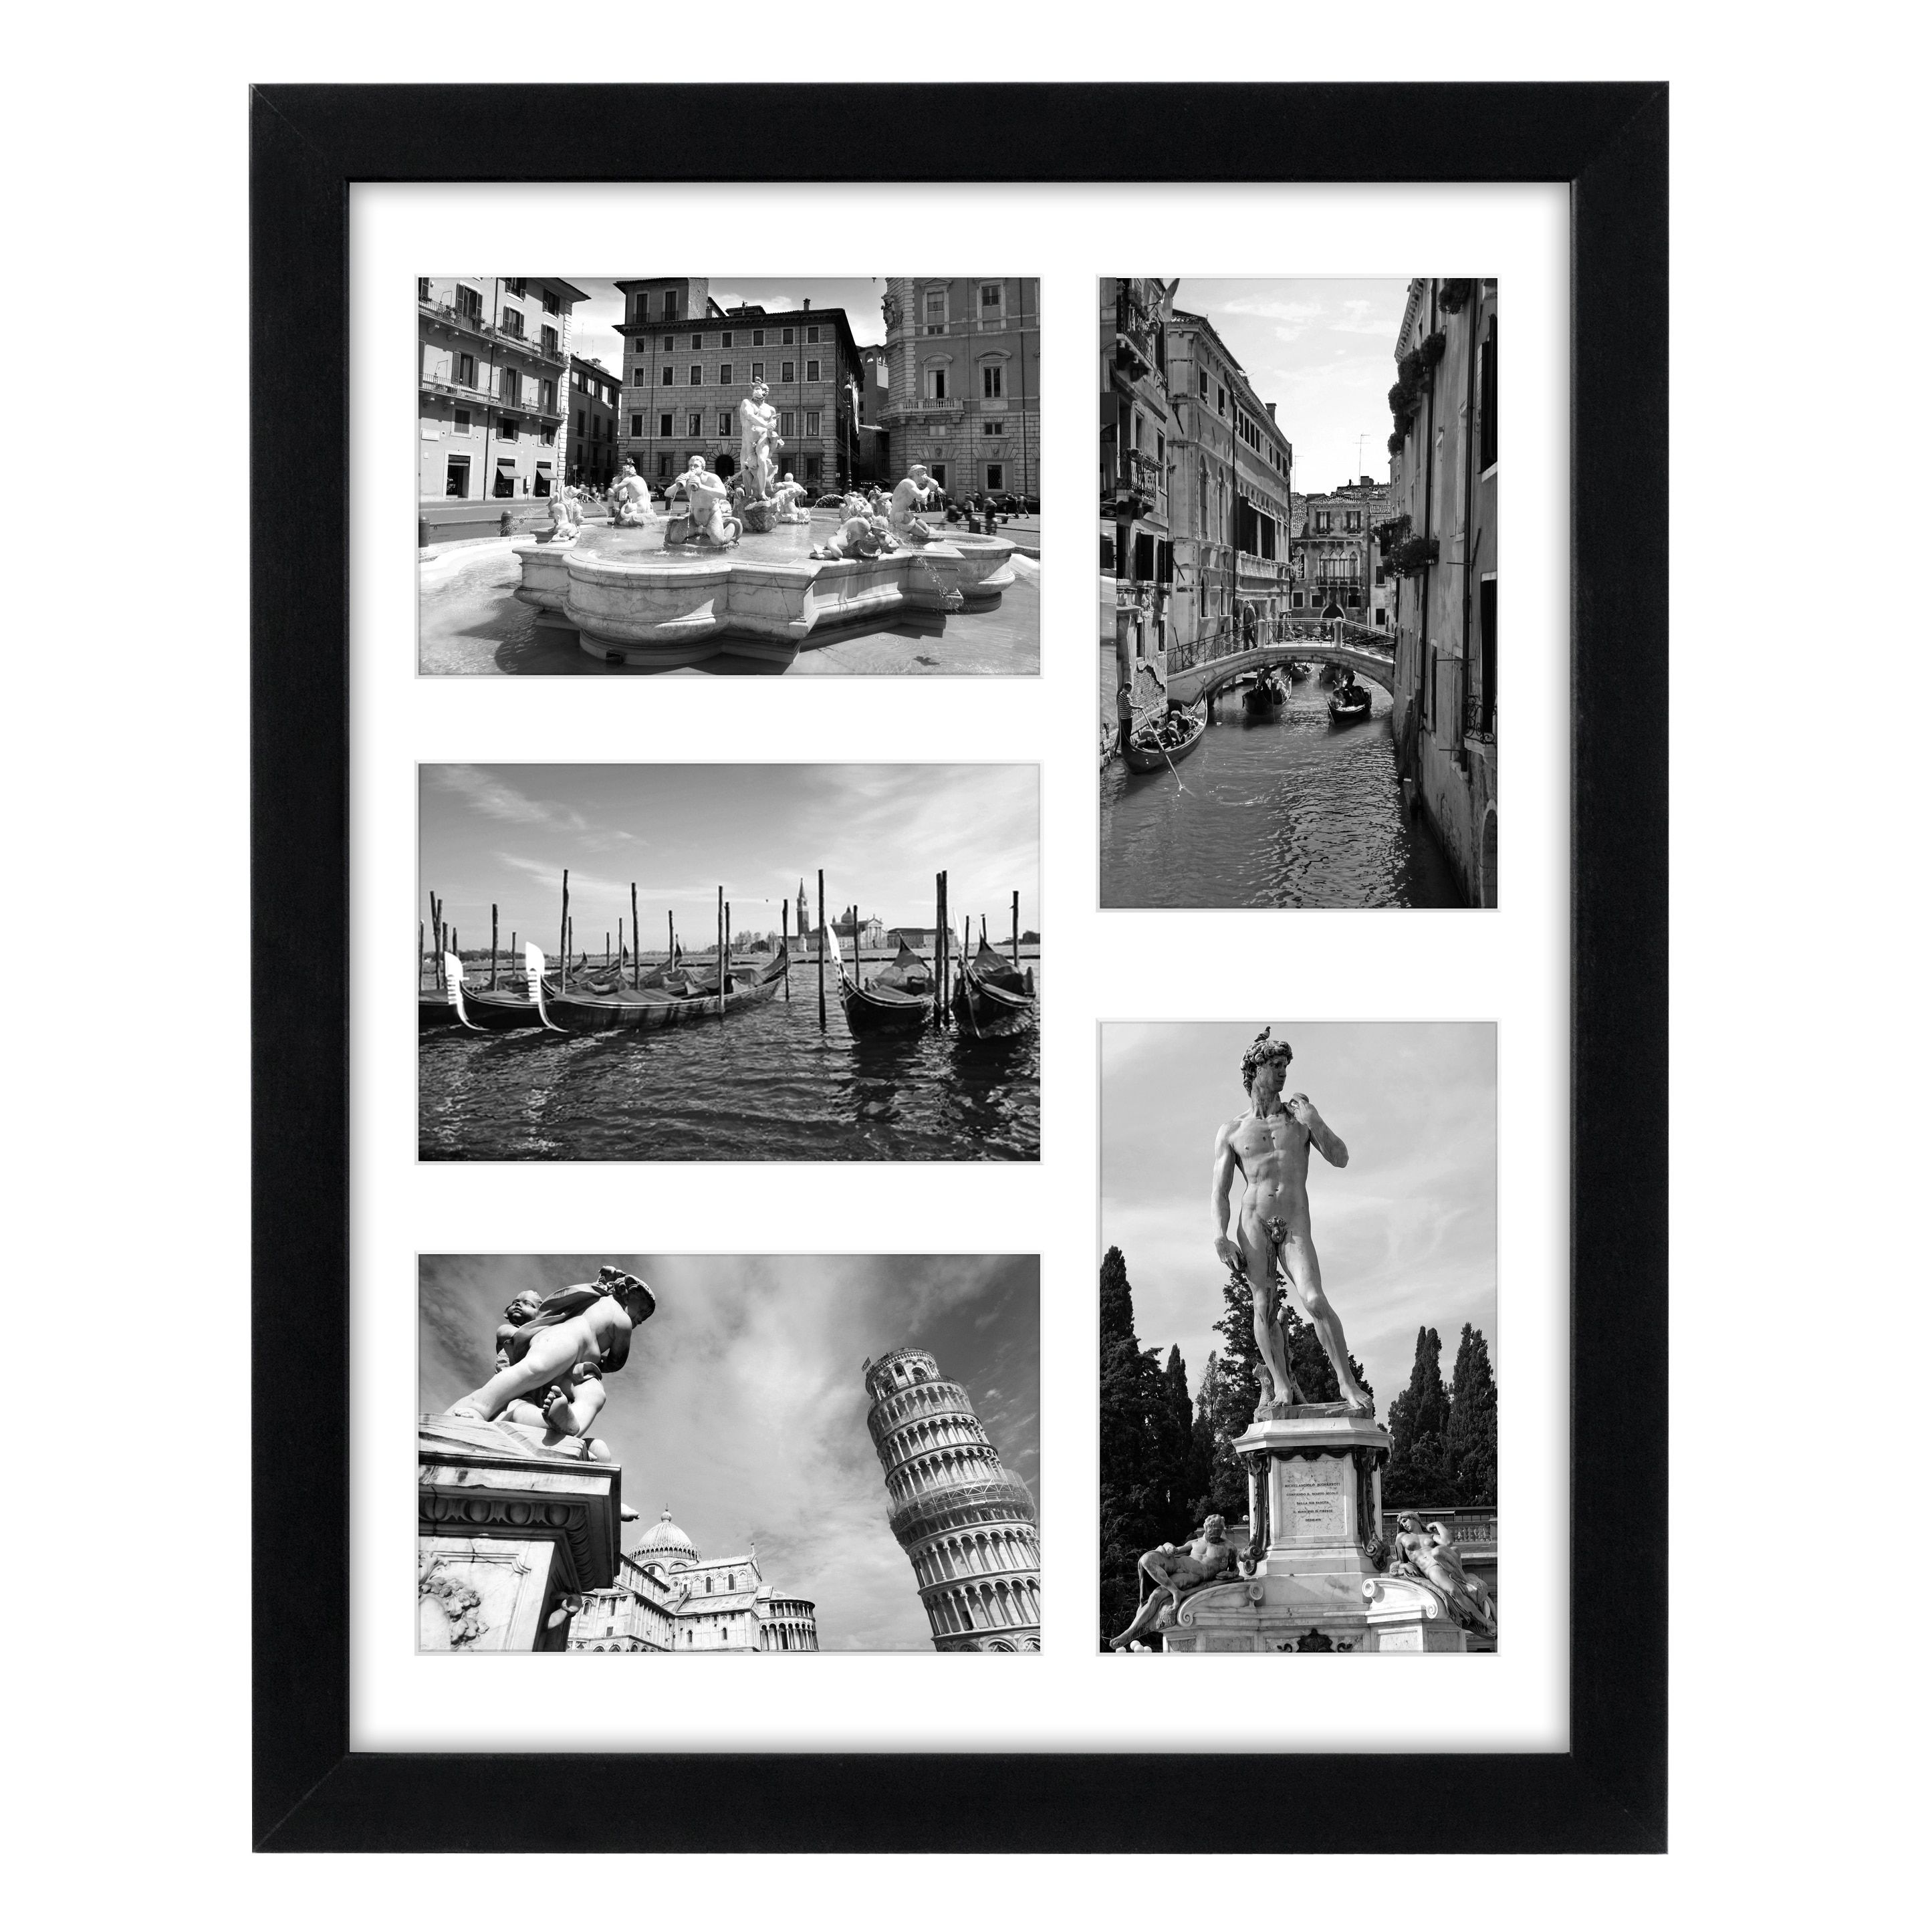 Americanflat Wood 11 x 14 Collage Picture Frame | Products | Pinterest